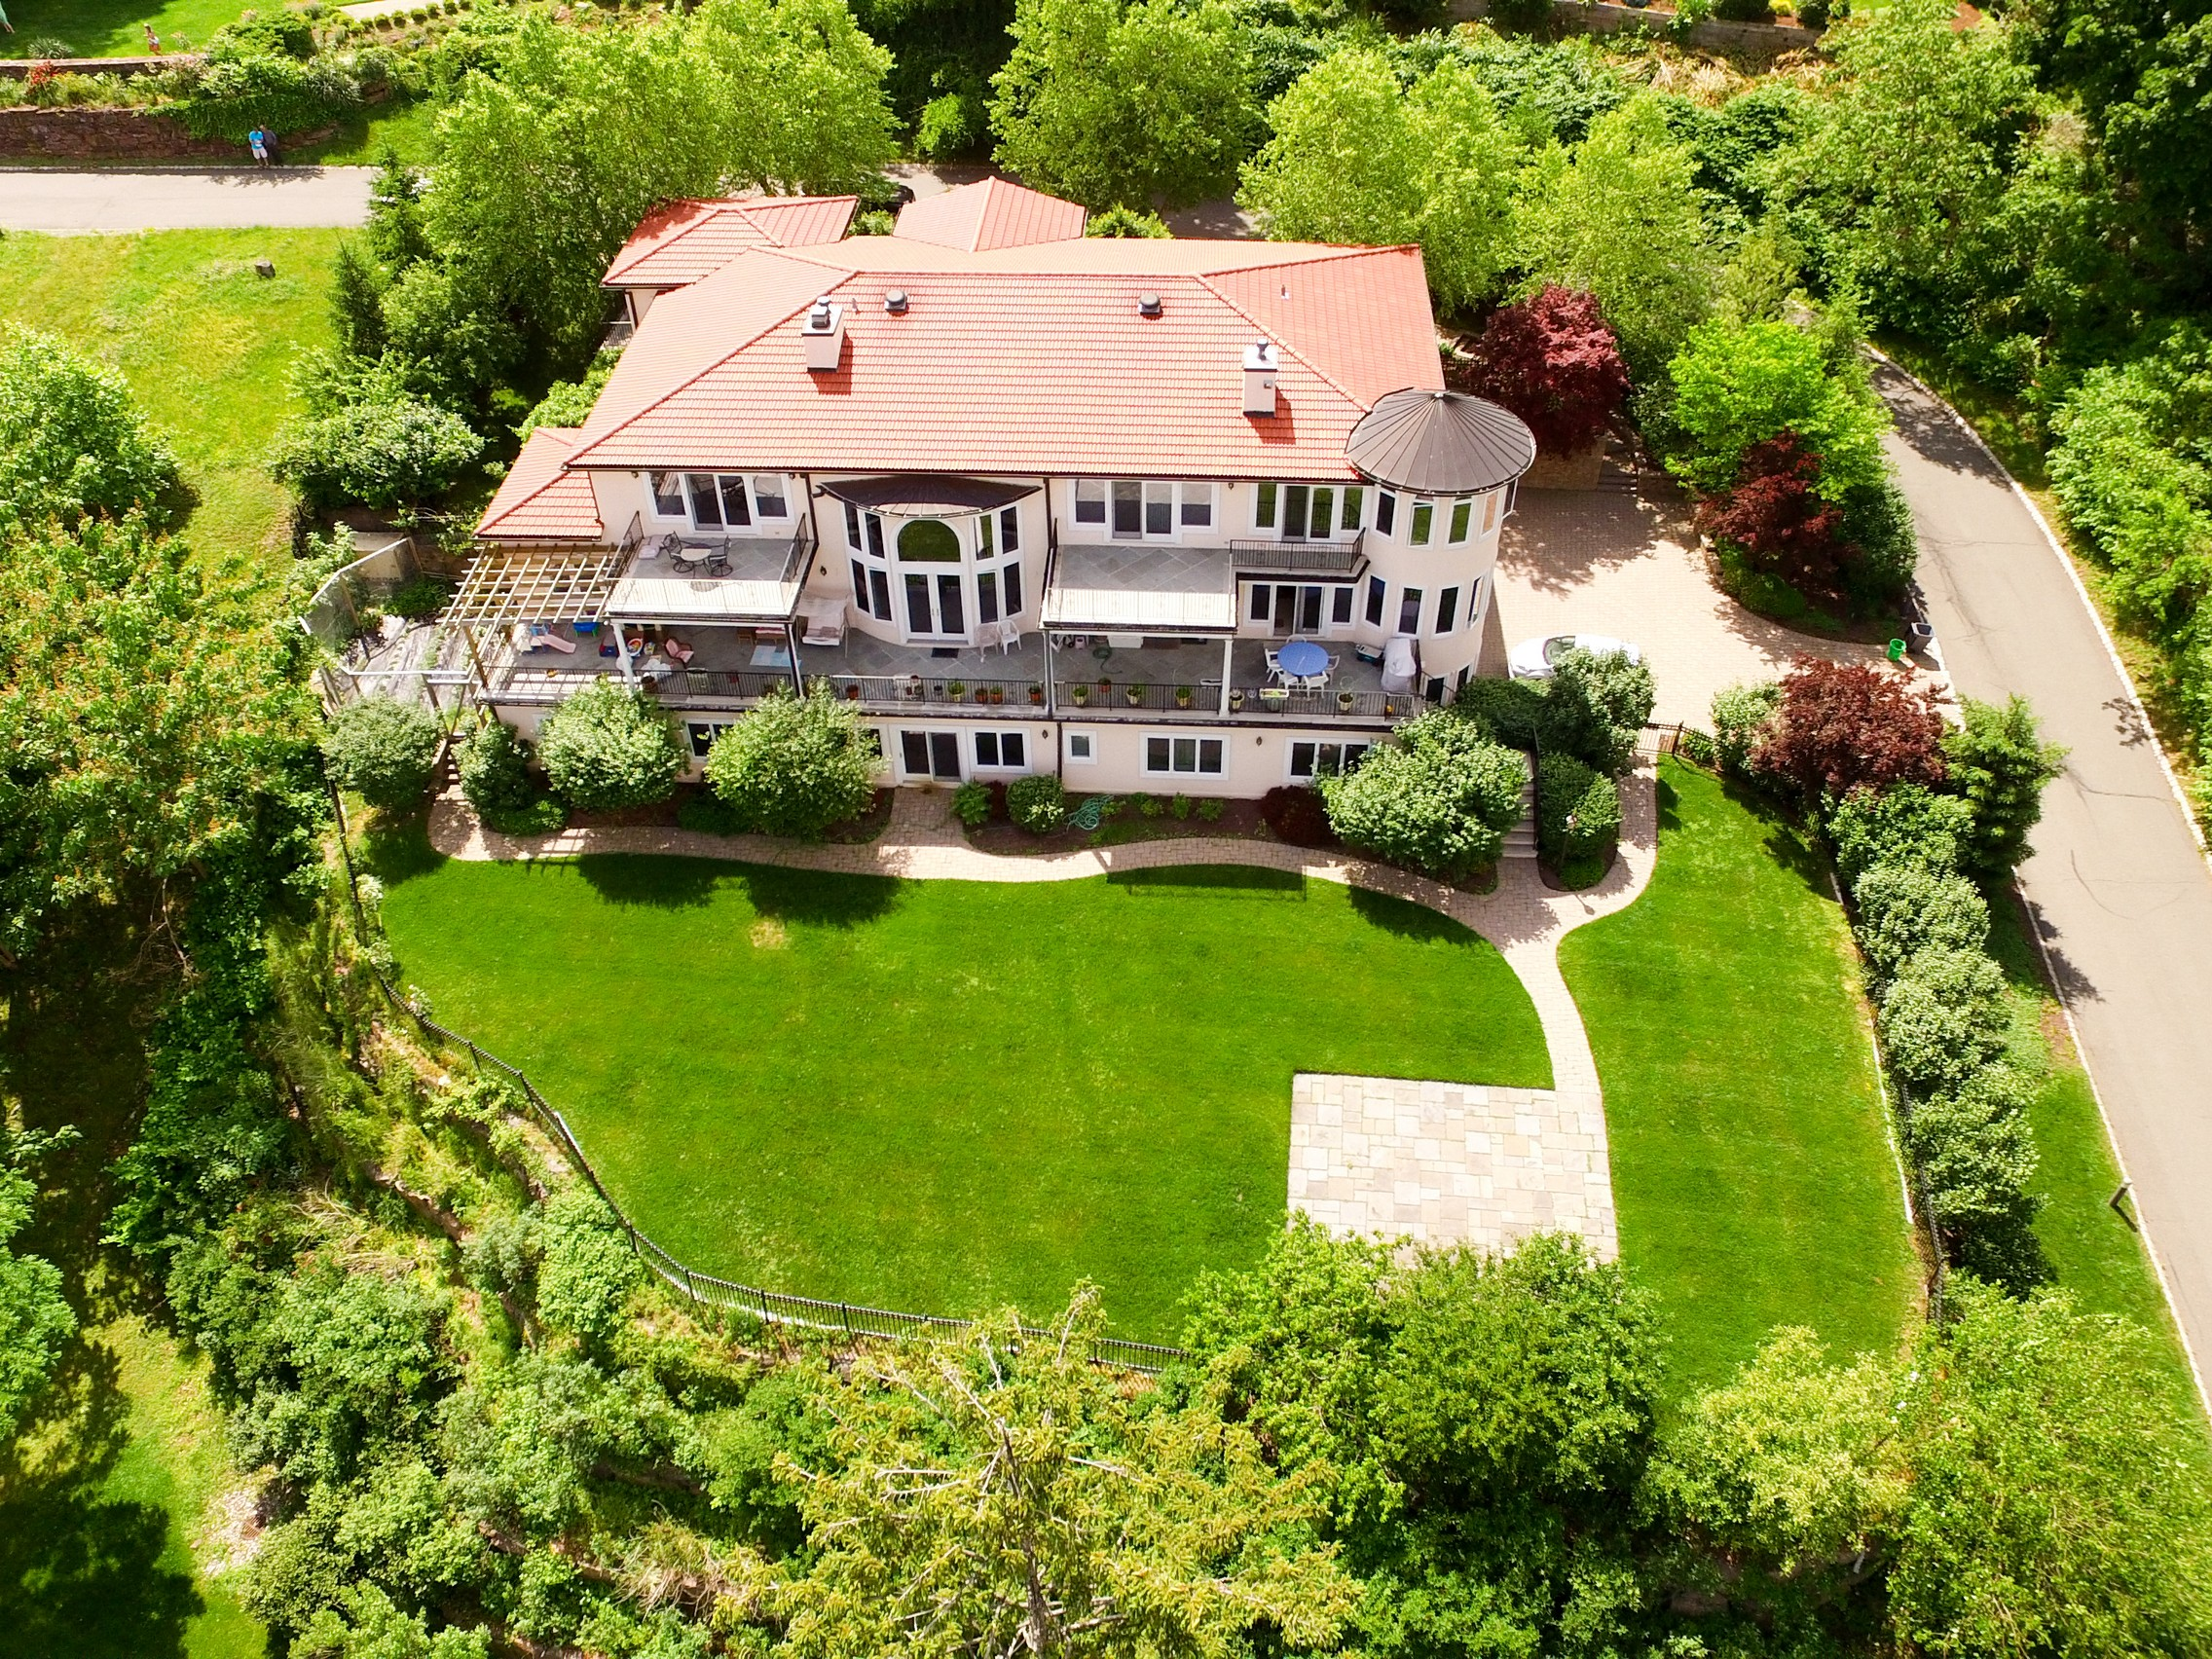 Single Family Home for Sale at Majestic Home with Expansive Hudson River Views 6 Tompkins Court Upper Nyack, New York 10960 United States